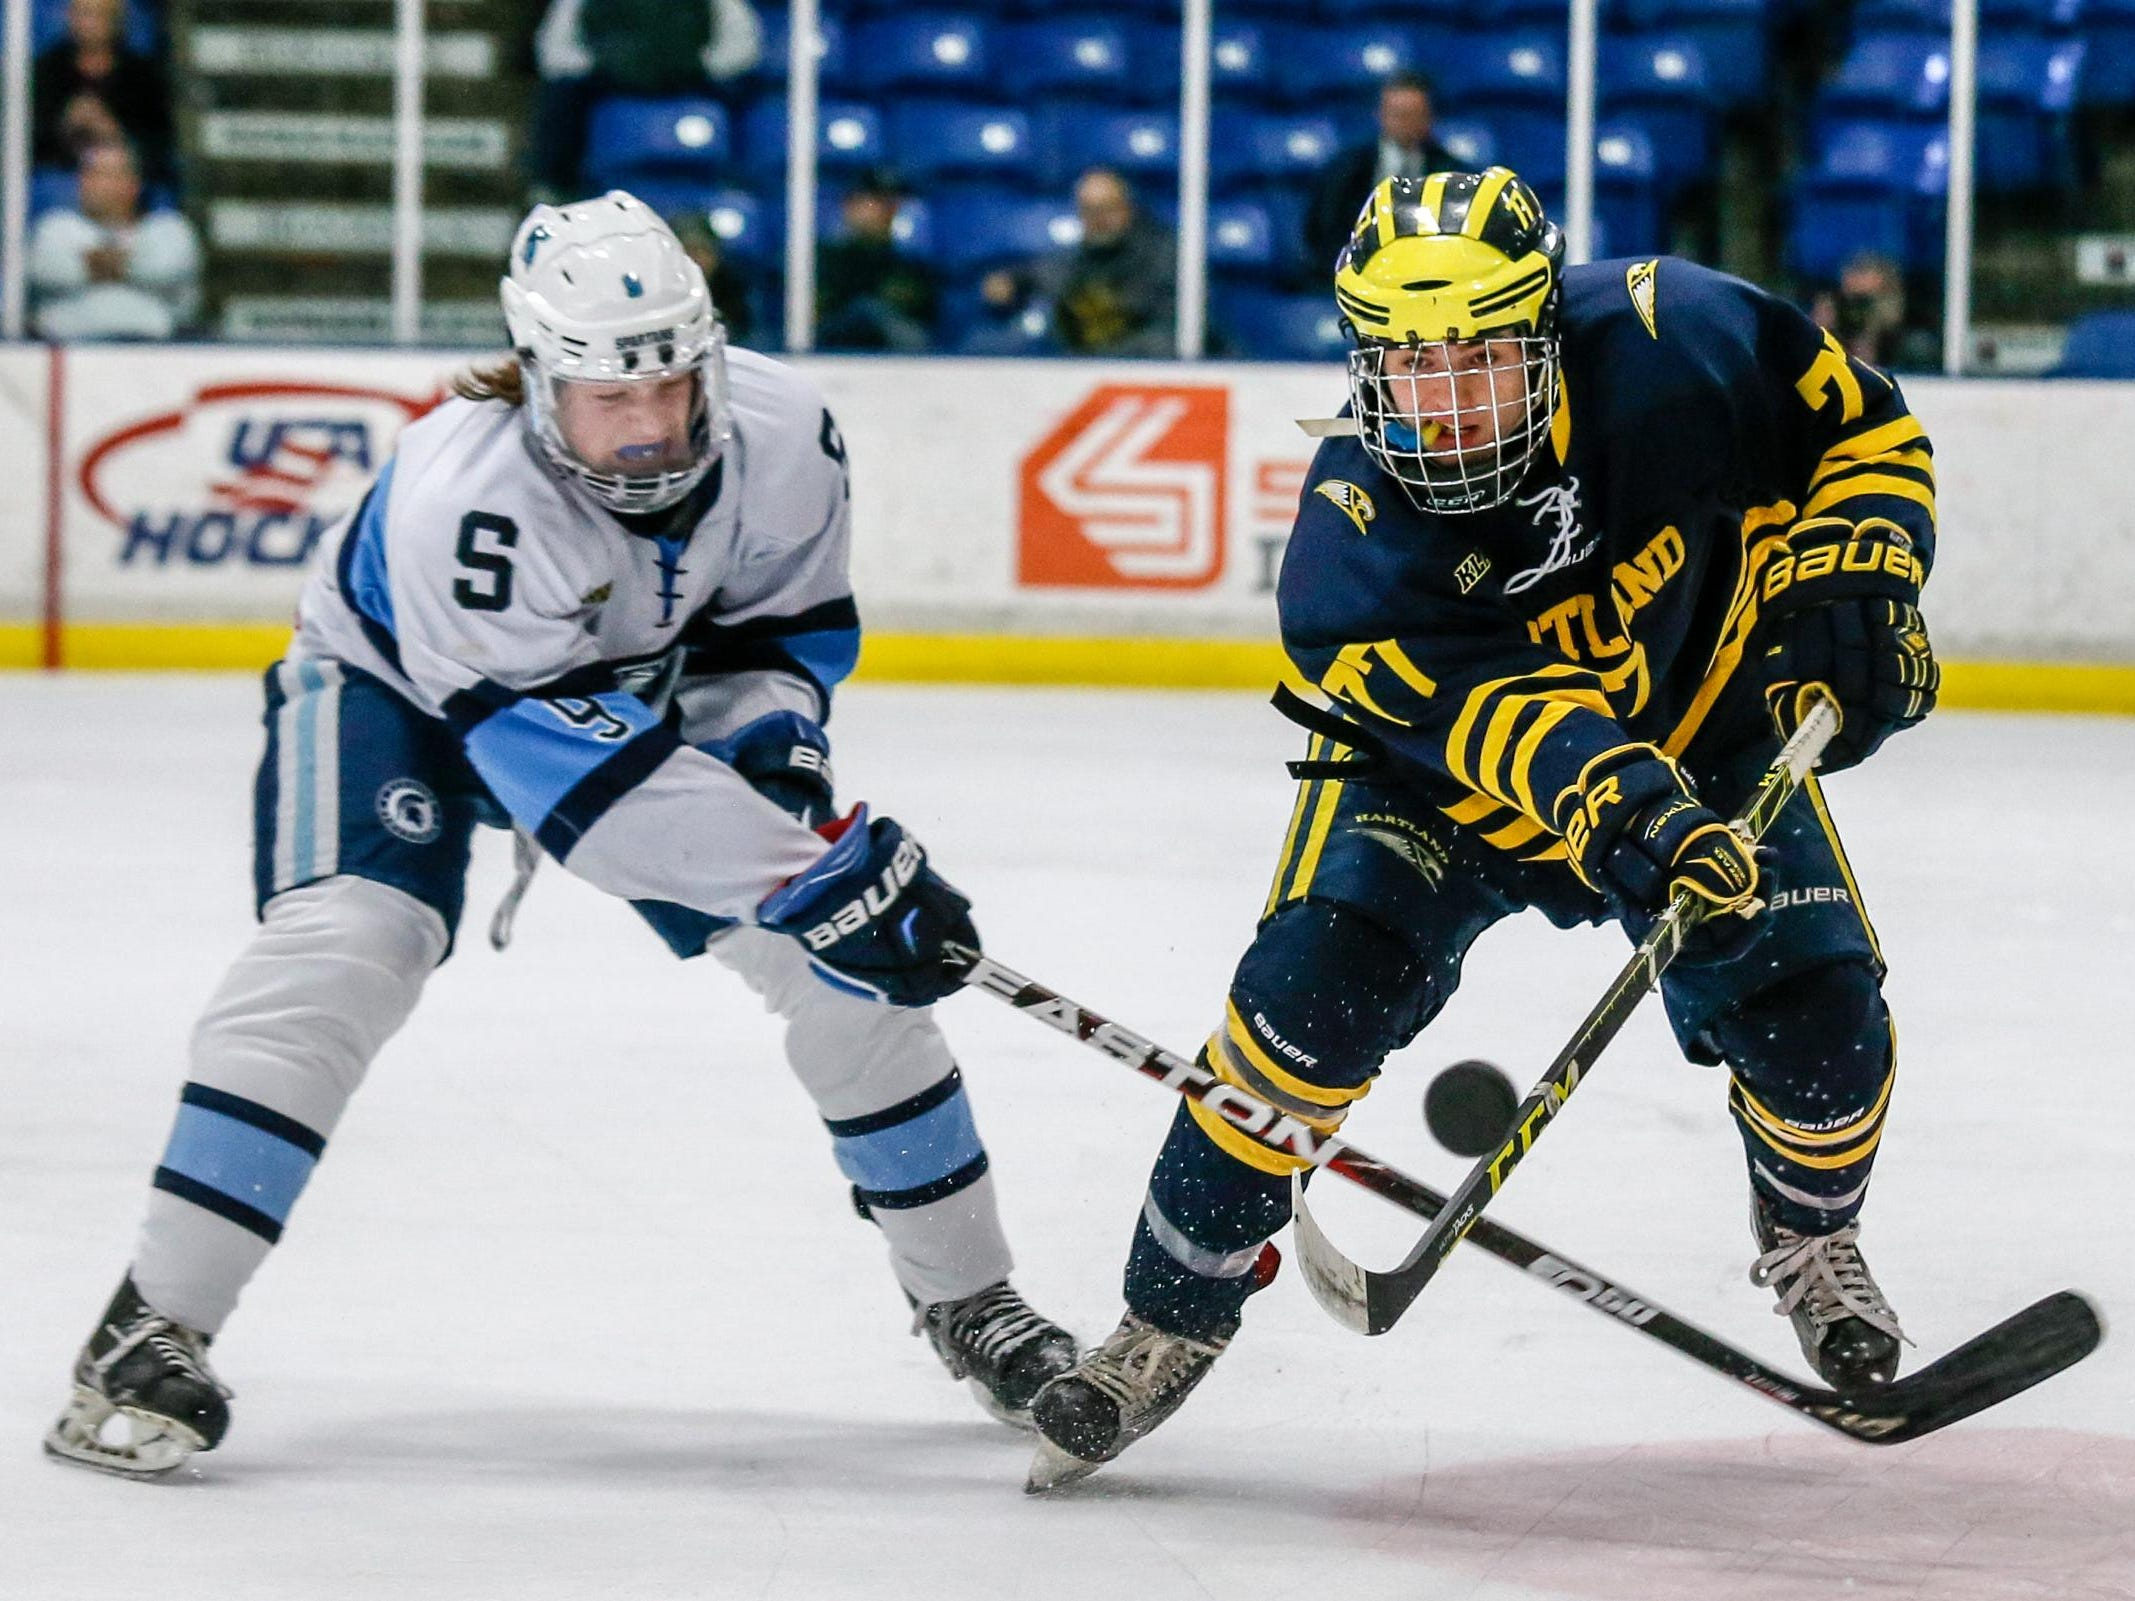 Hartland's Jake DeYoung, right, fights for the puck against Livonia Stevenson's Alex Walkuski Thursday at USA Hockey Arena.